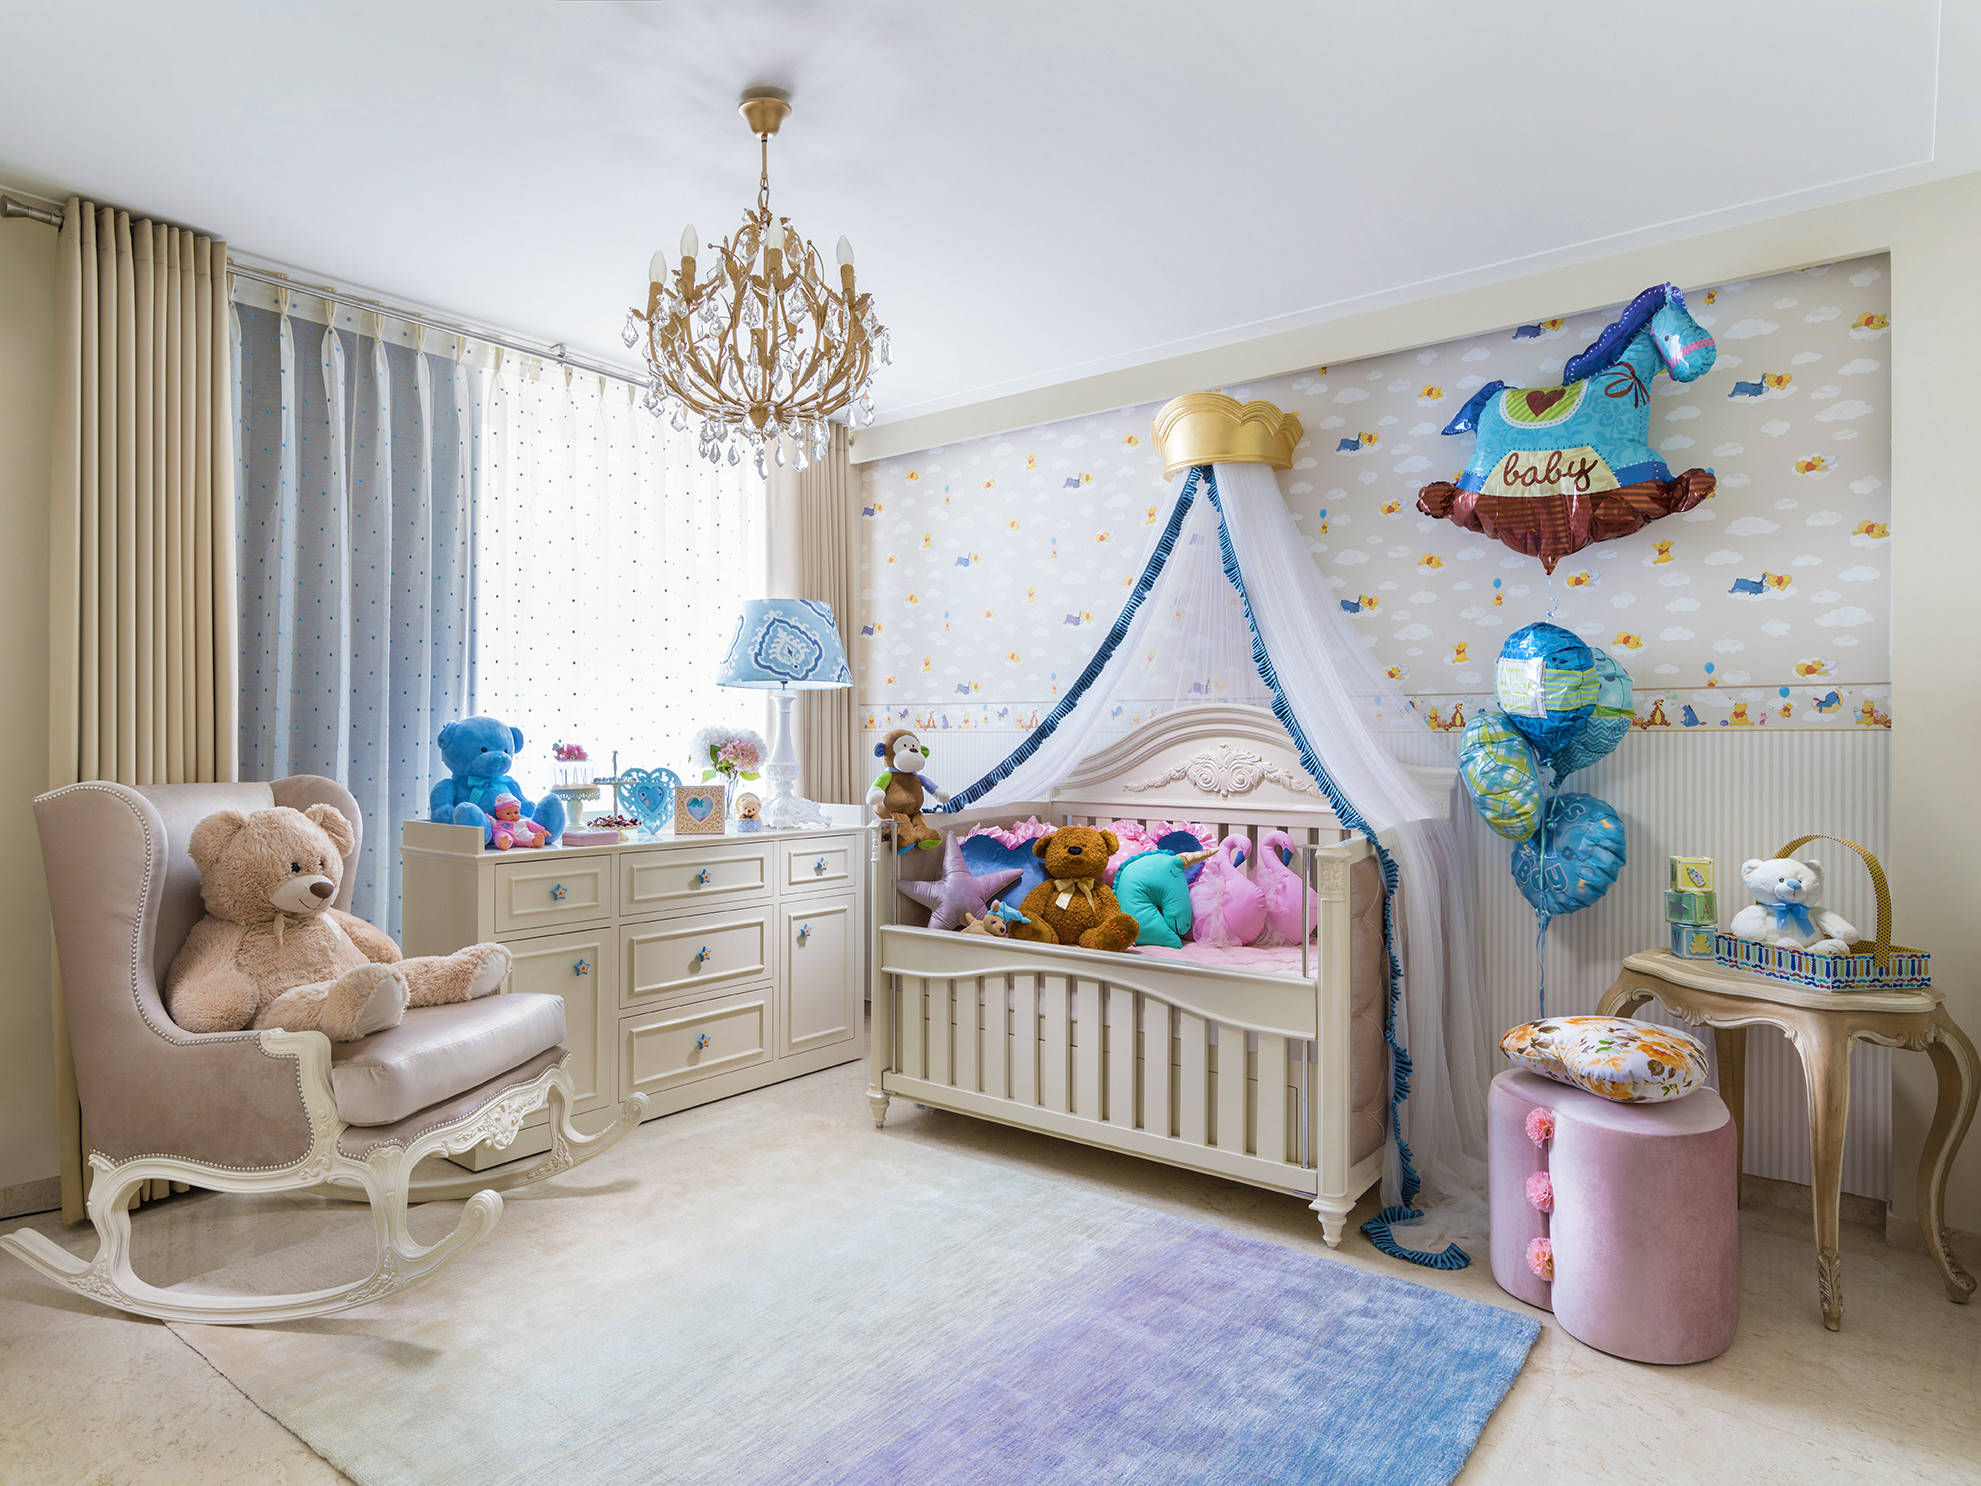 17 Delightful Eclectic Kids Room Designs With A Cozy Look